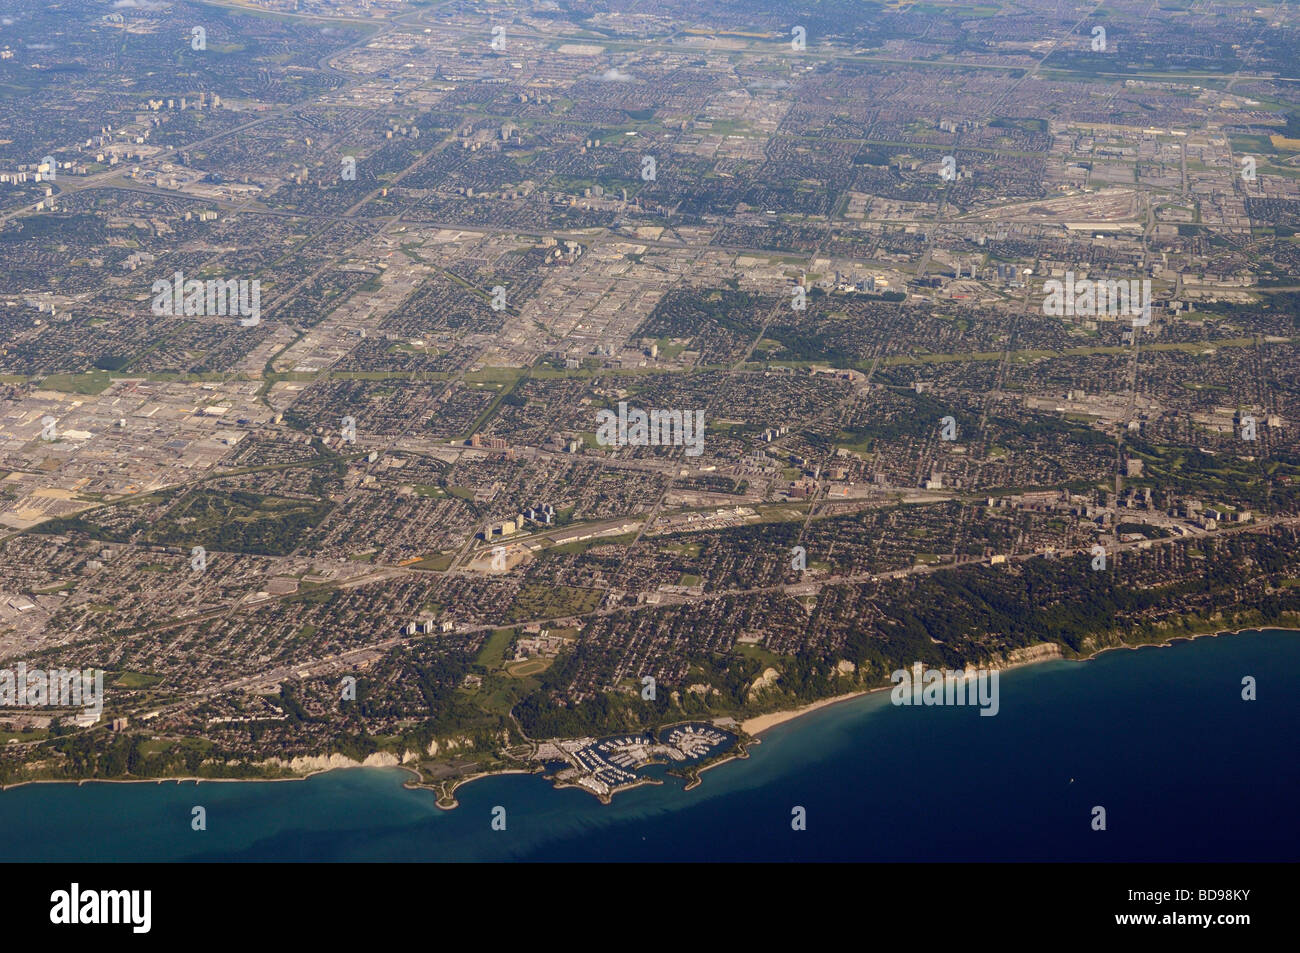 Aerial view of Scarborough with Bluffs on Lake Ontario Toronto - Stock Image